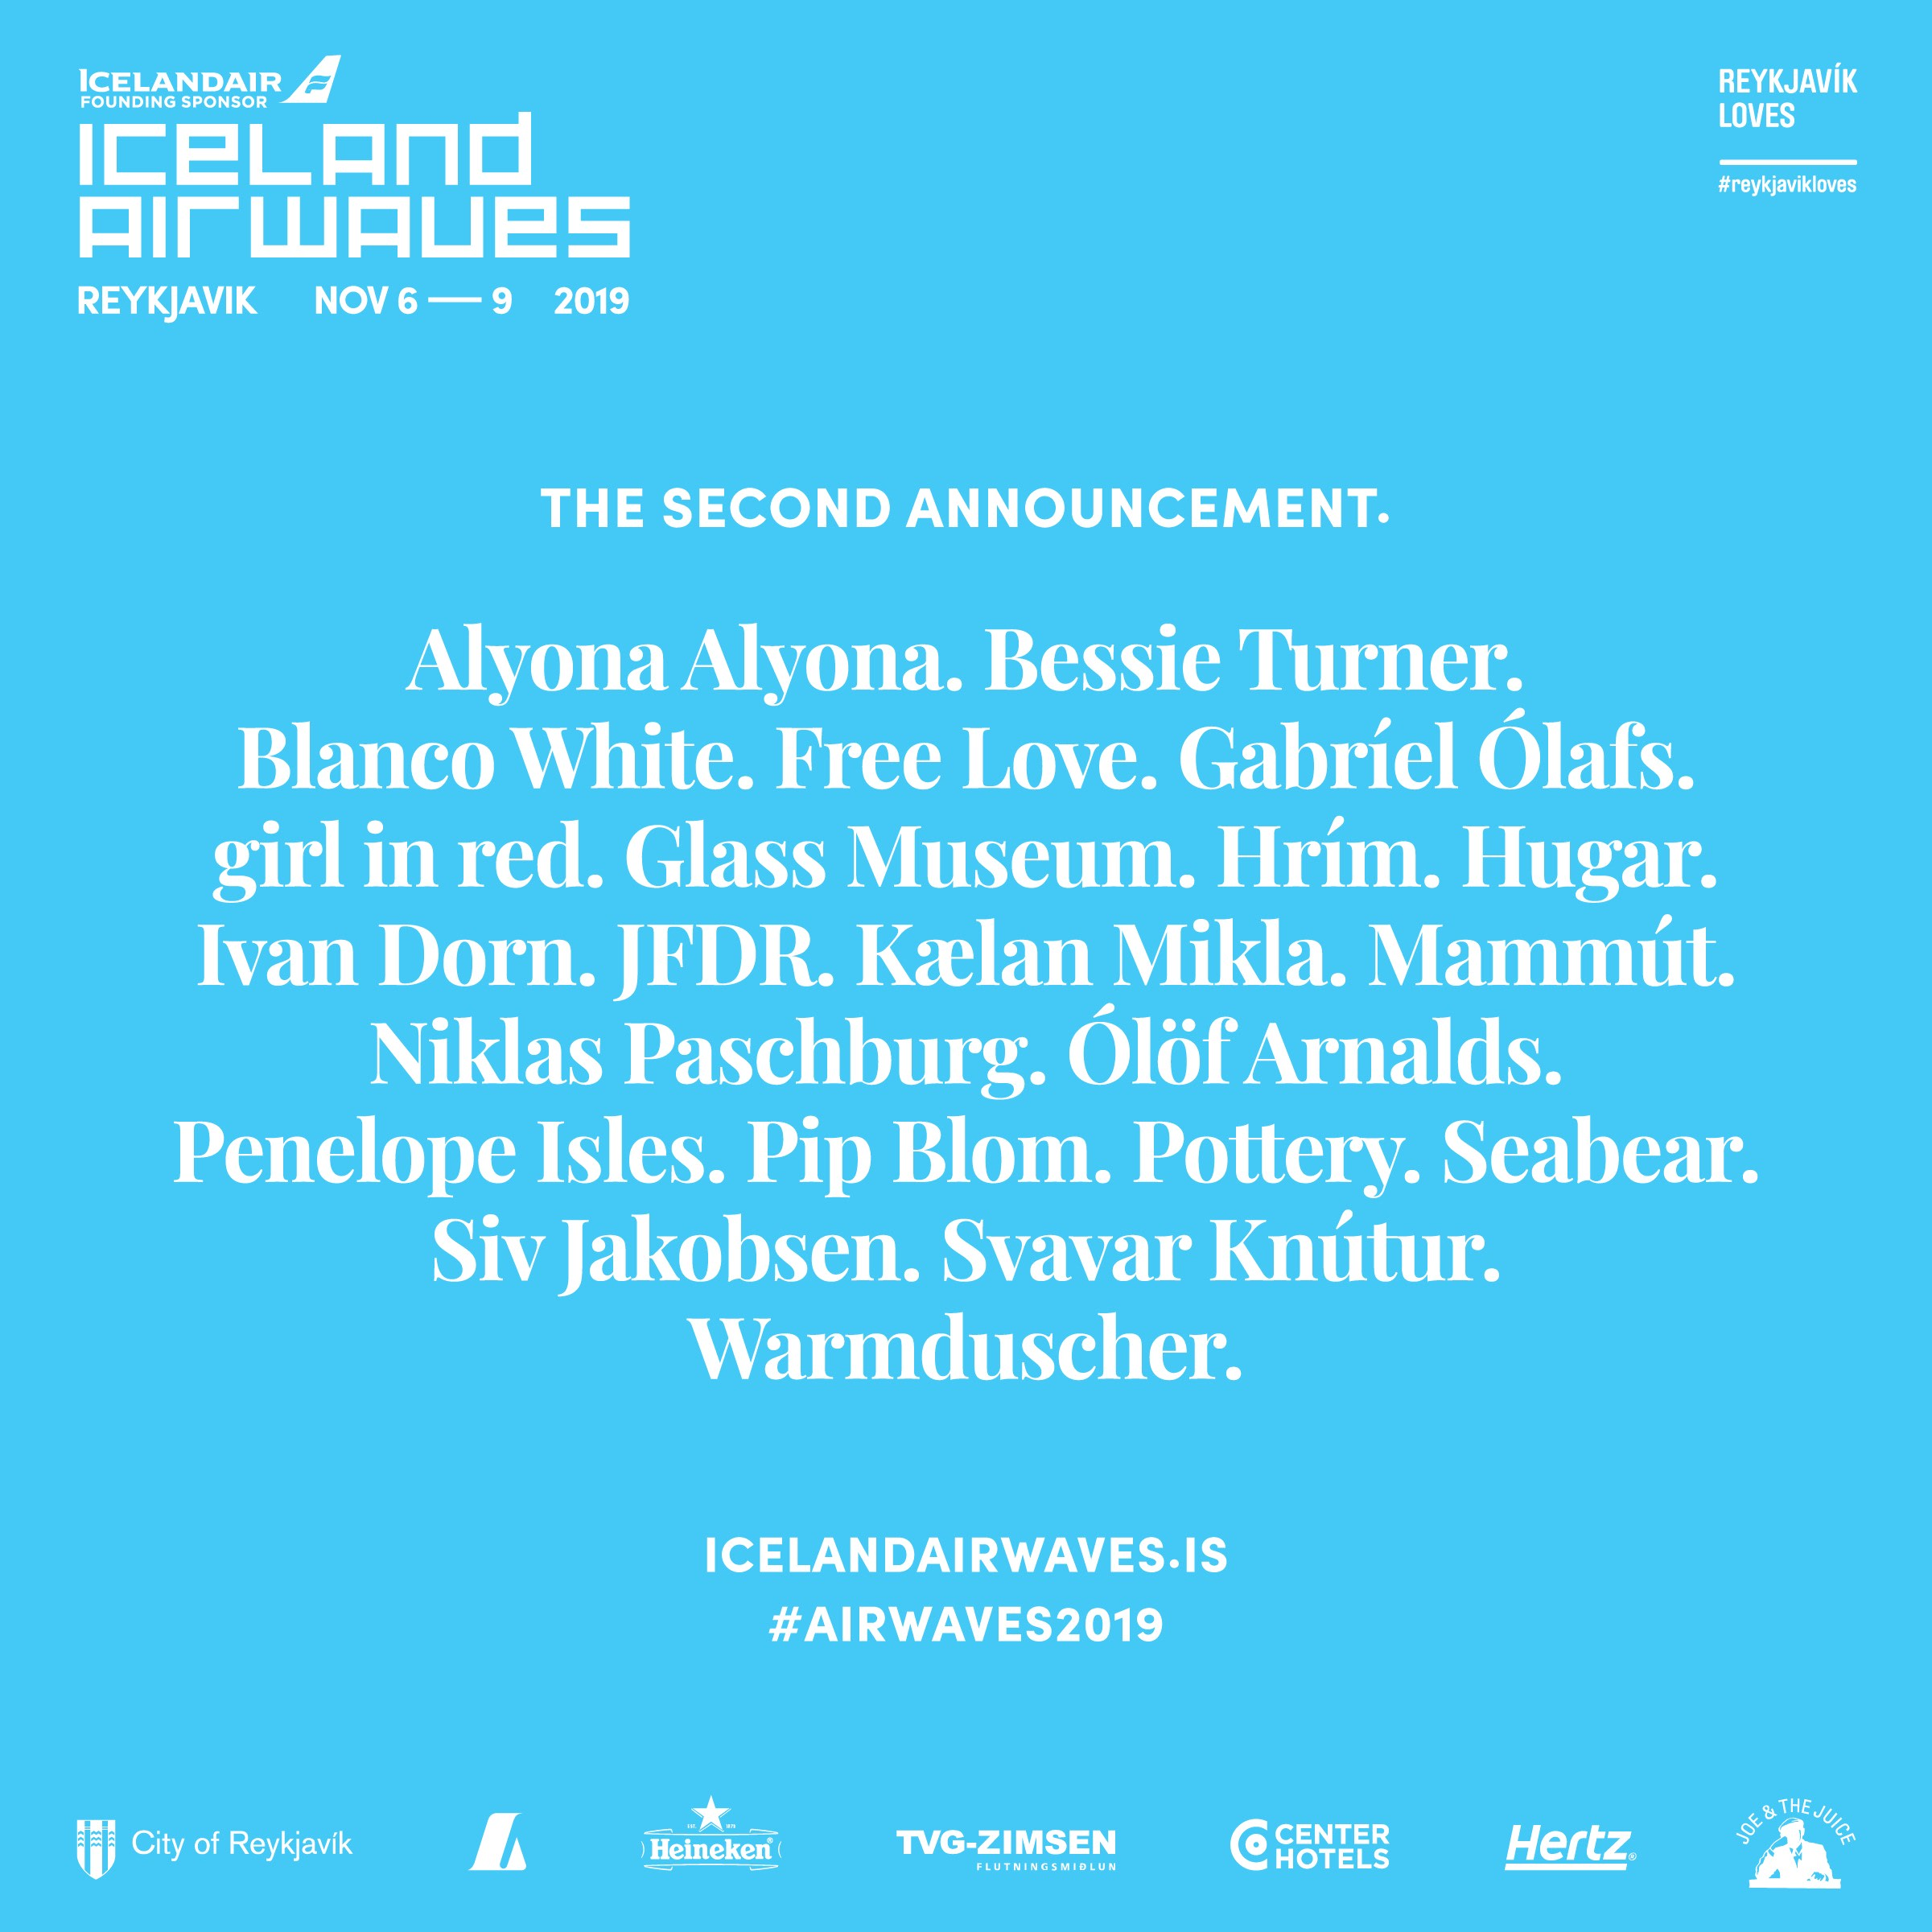 The second announcement and lineup poster for the Iceland Airwaves 2019 show